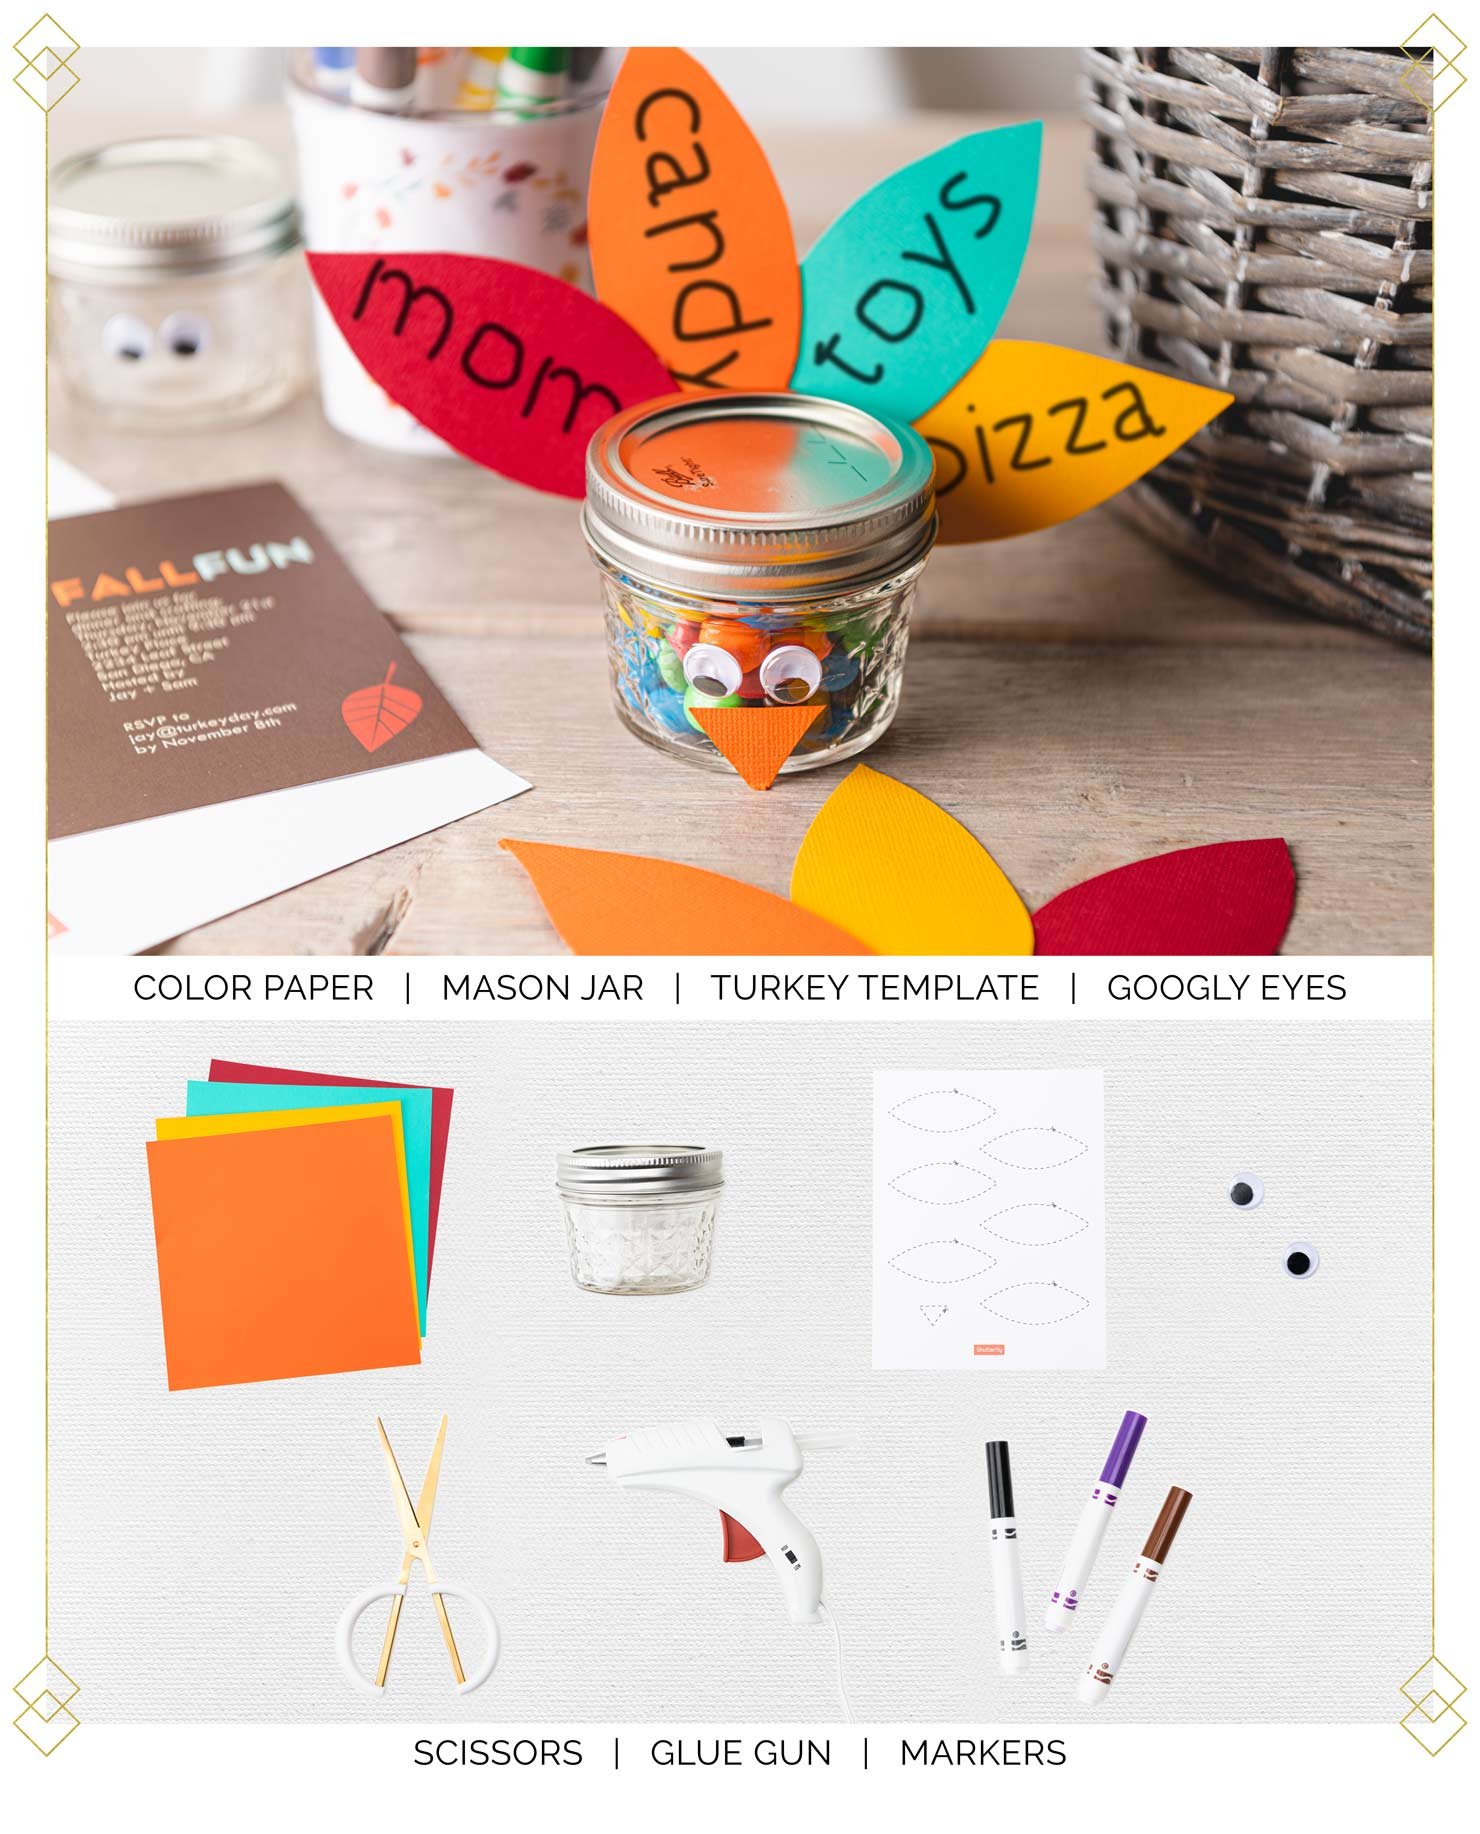 All materials needed to make a gratitude turkey like scissors, paper, jar and markers.